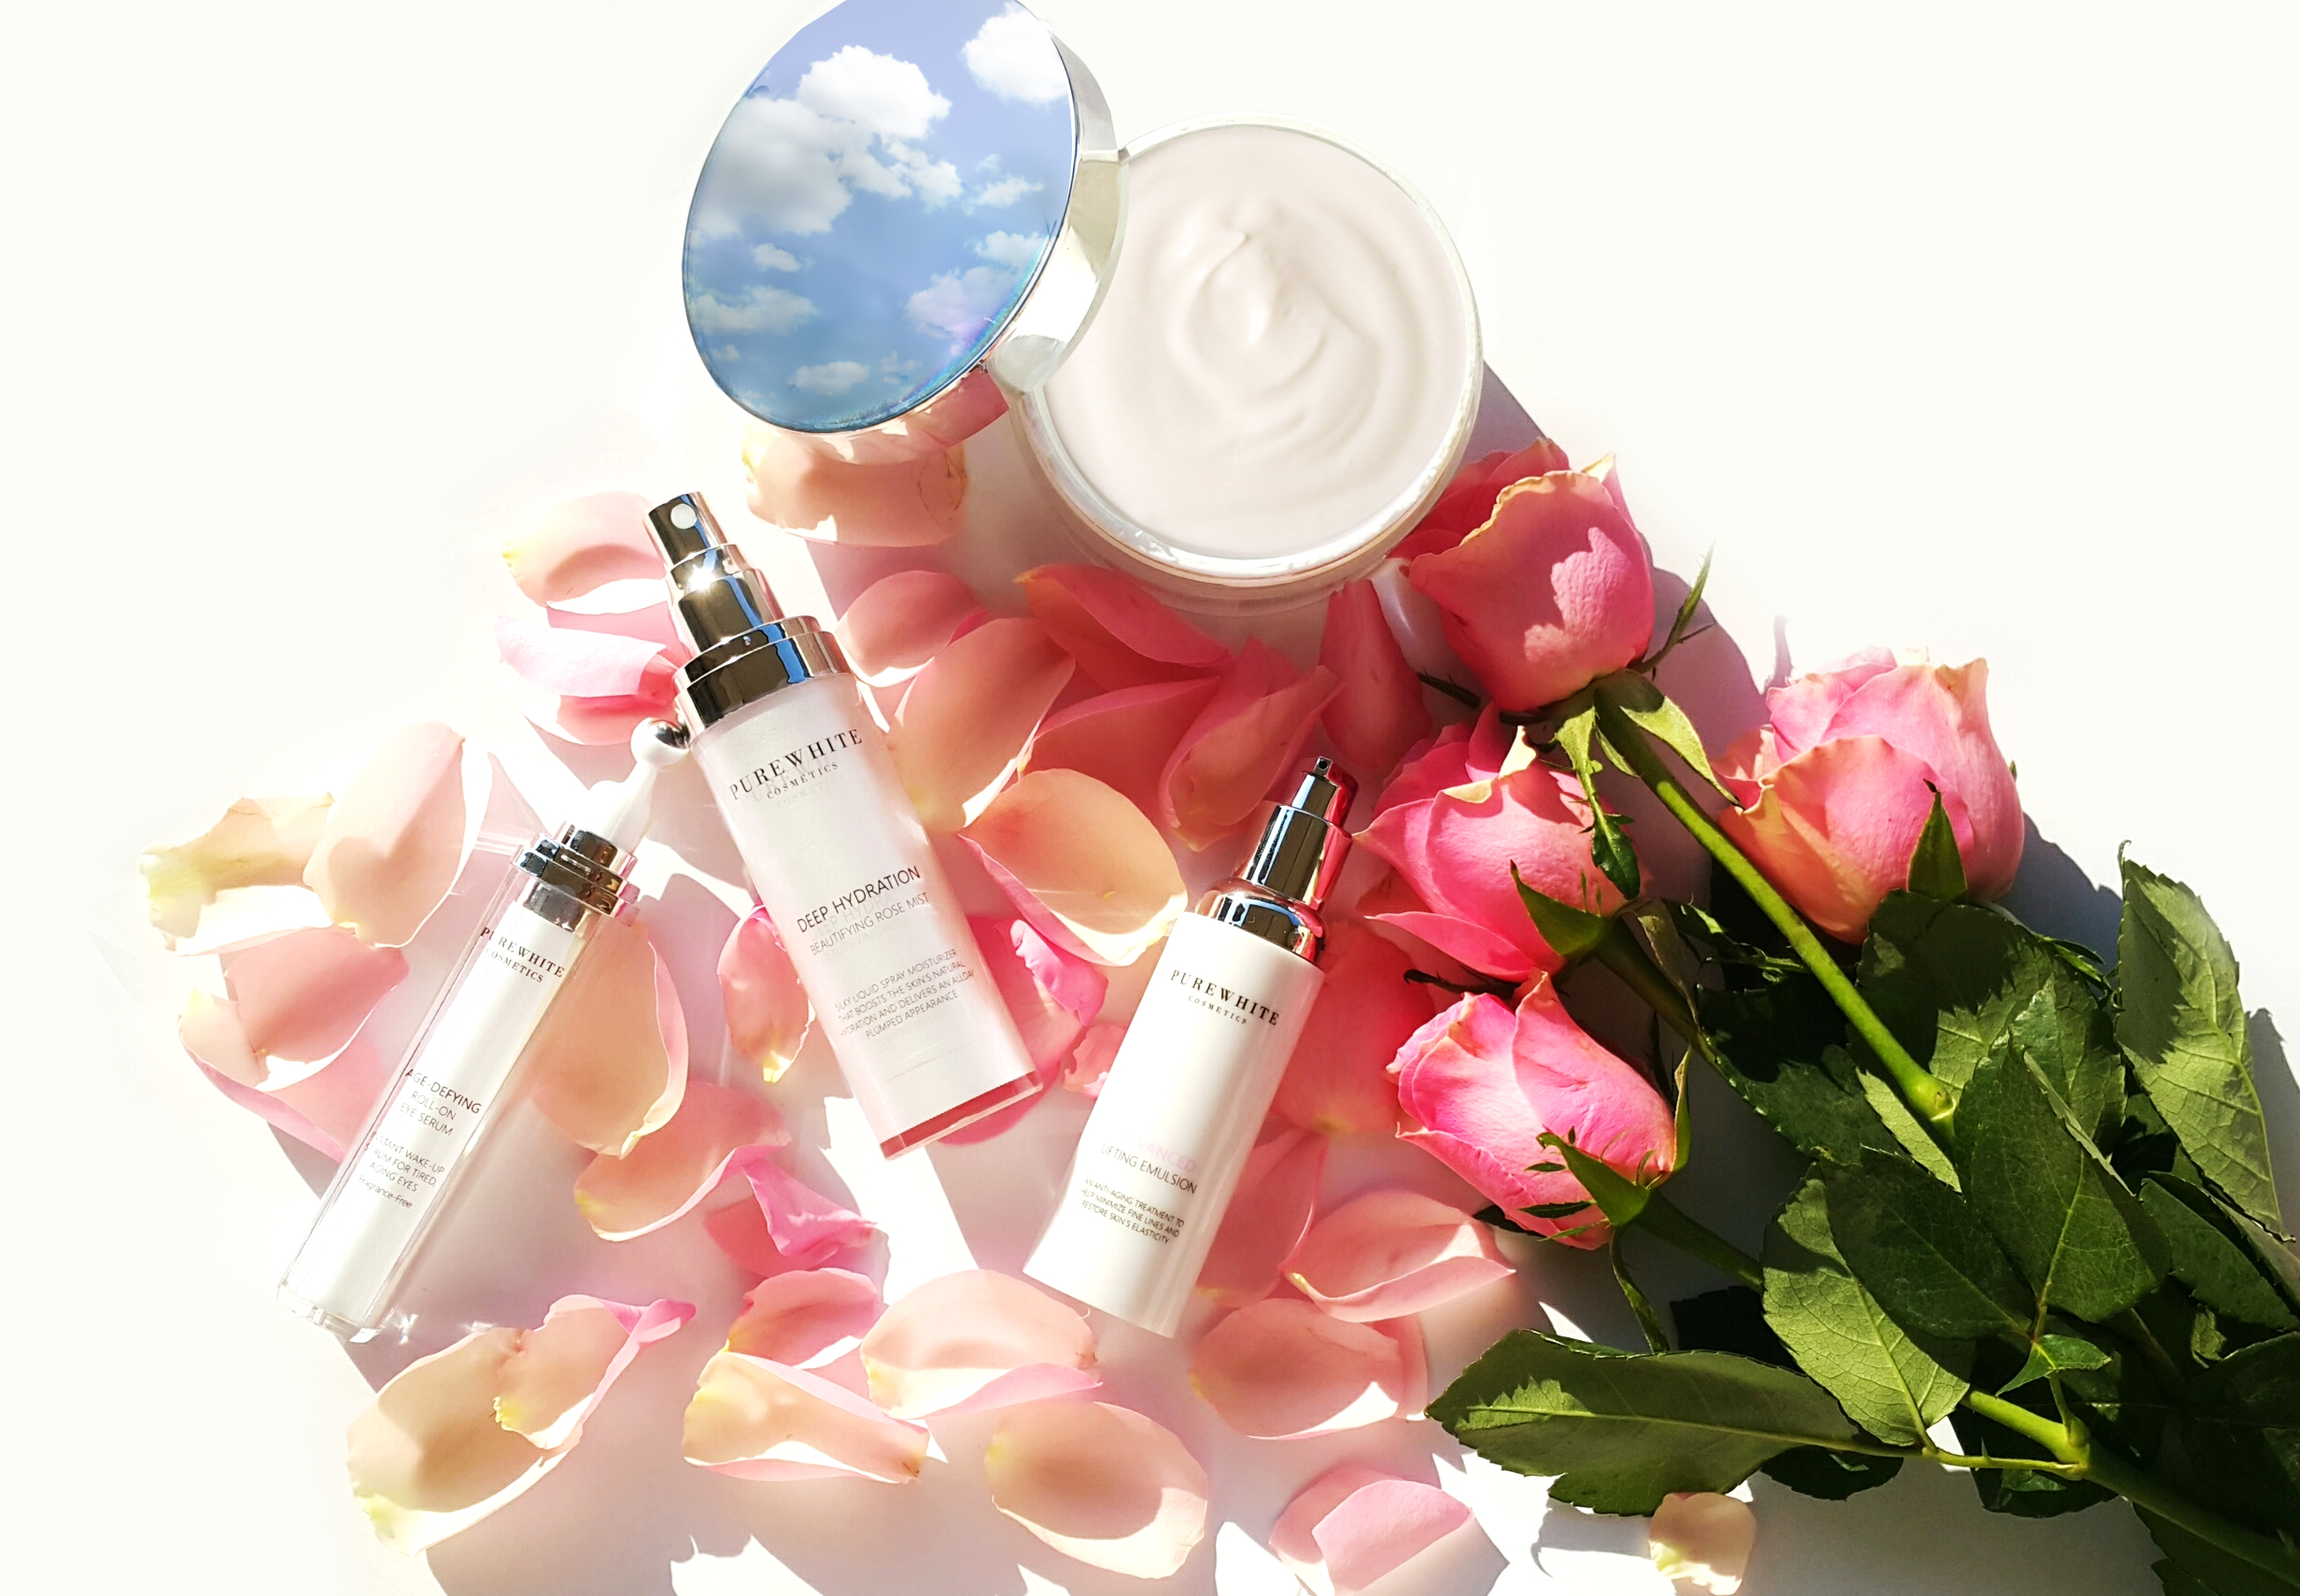 Pure White Cosmetics - 5 TIPS FOR GLOWING SKIN THIS SPRING